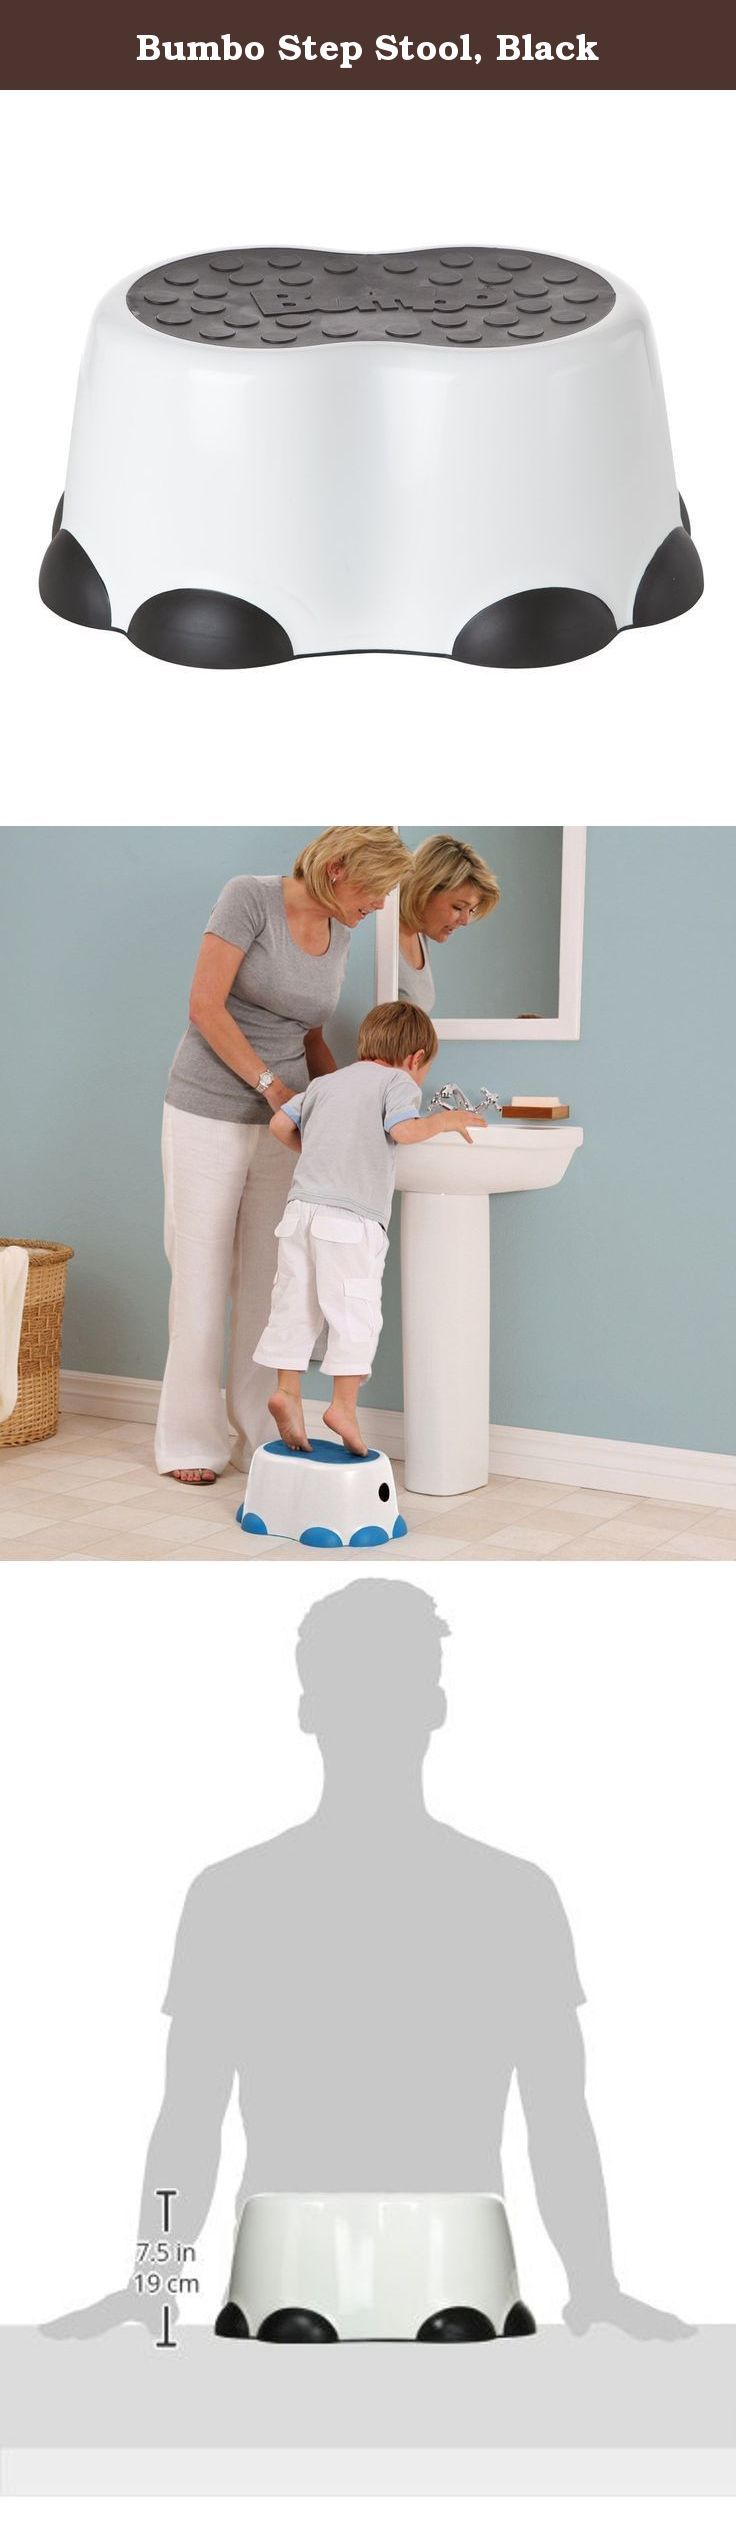 Bumbo Step Stool, Black. A Portable, Lightweight And Sturdy Stool Designed  To Help